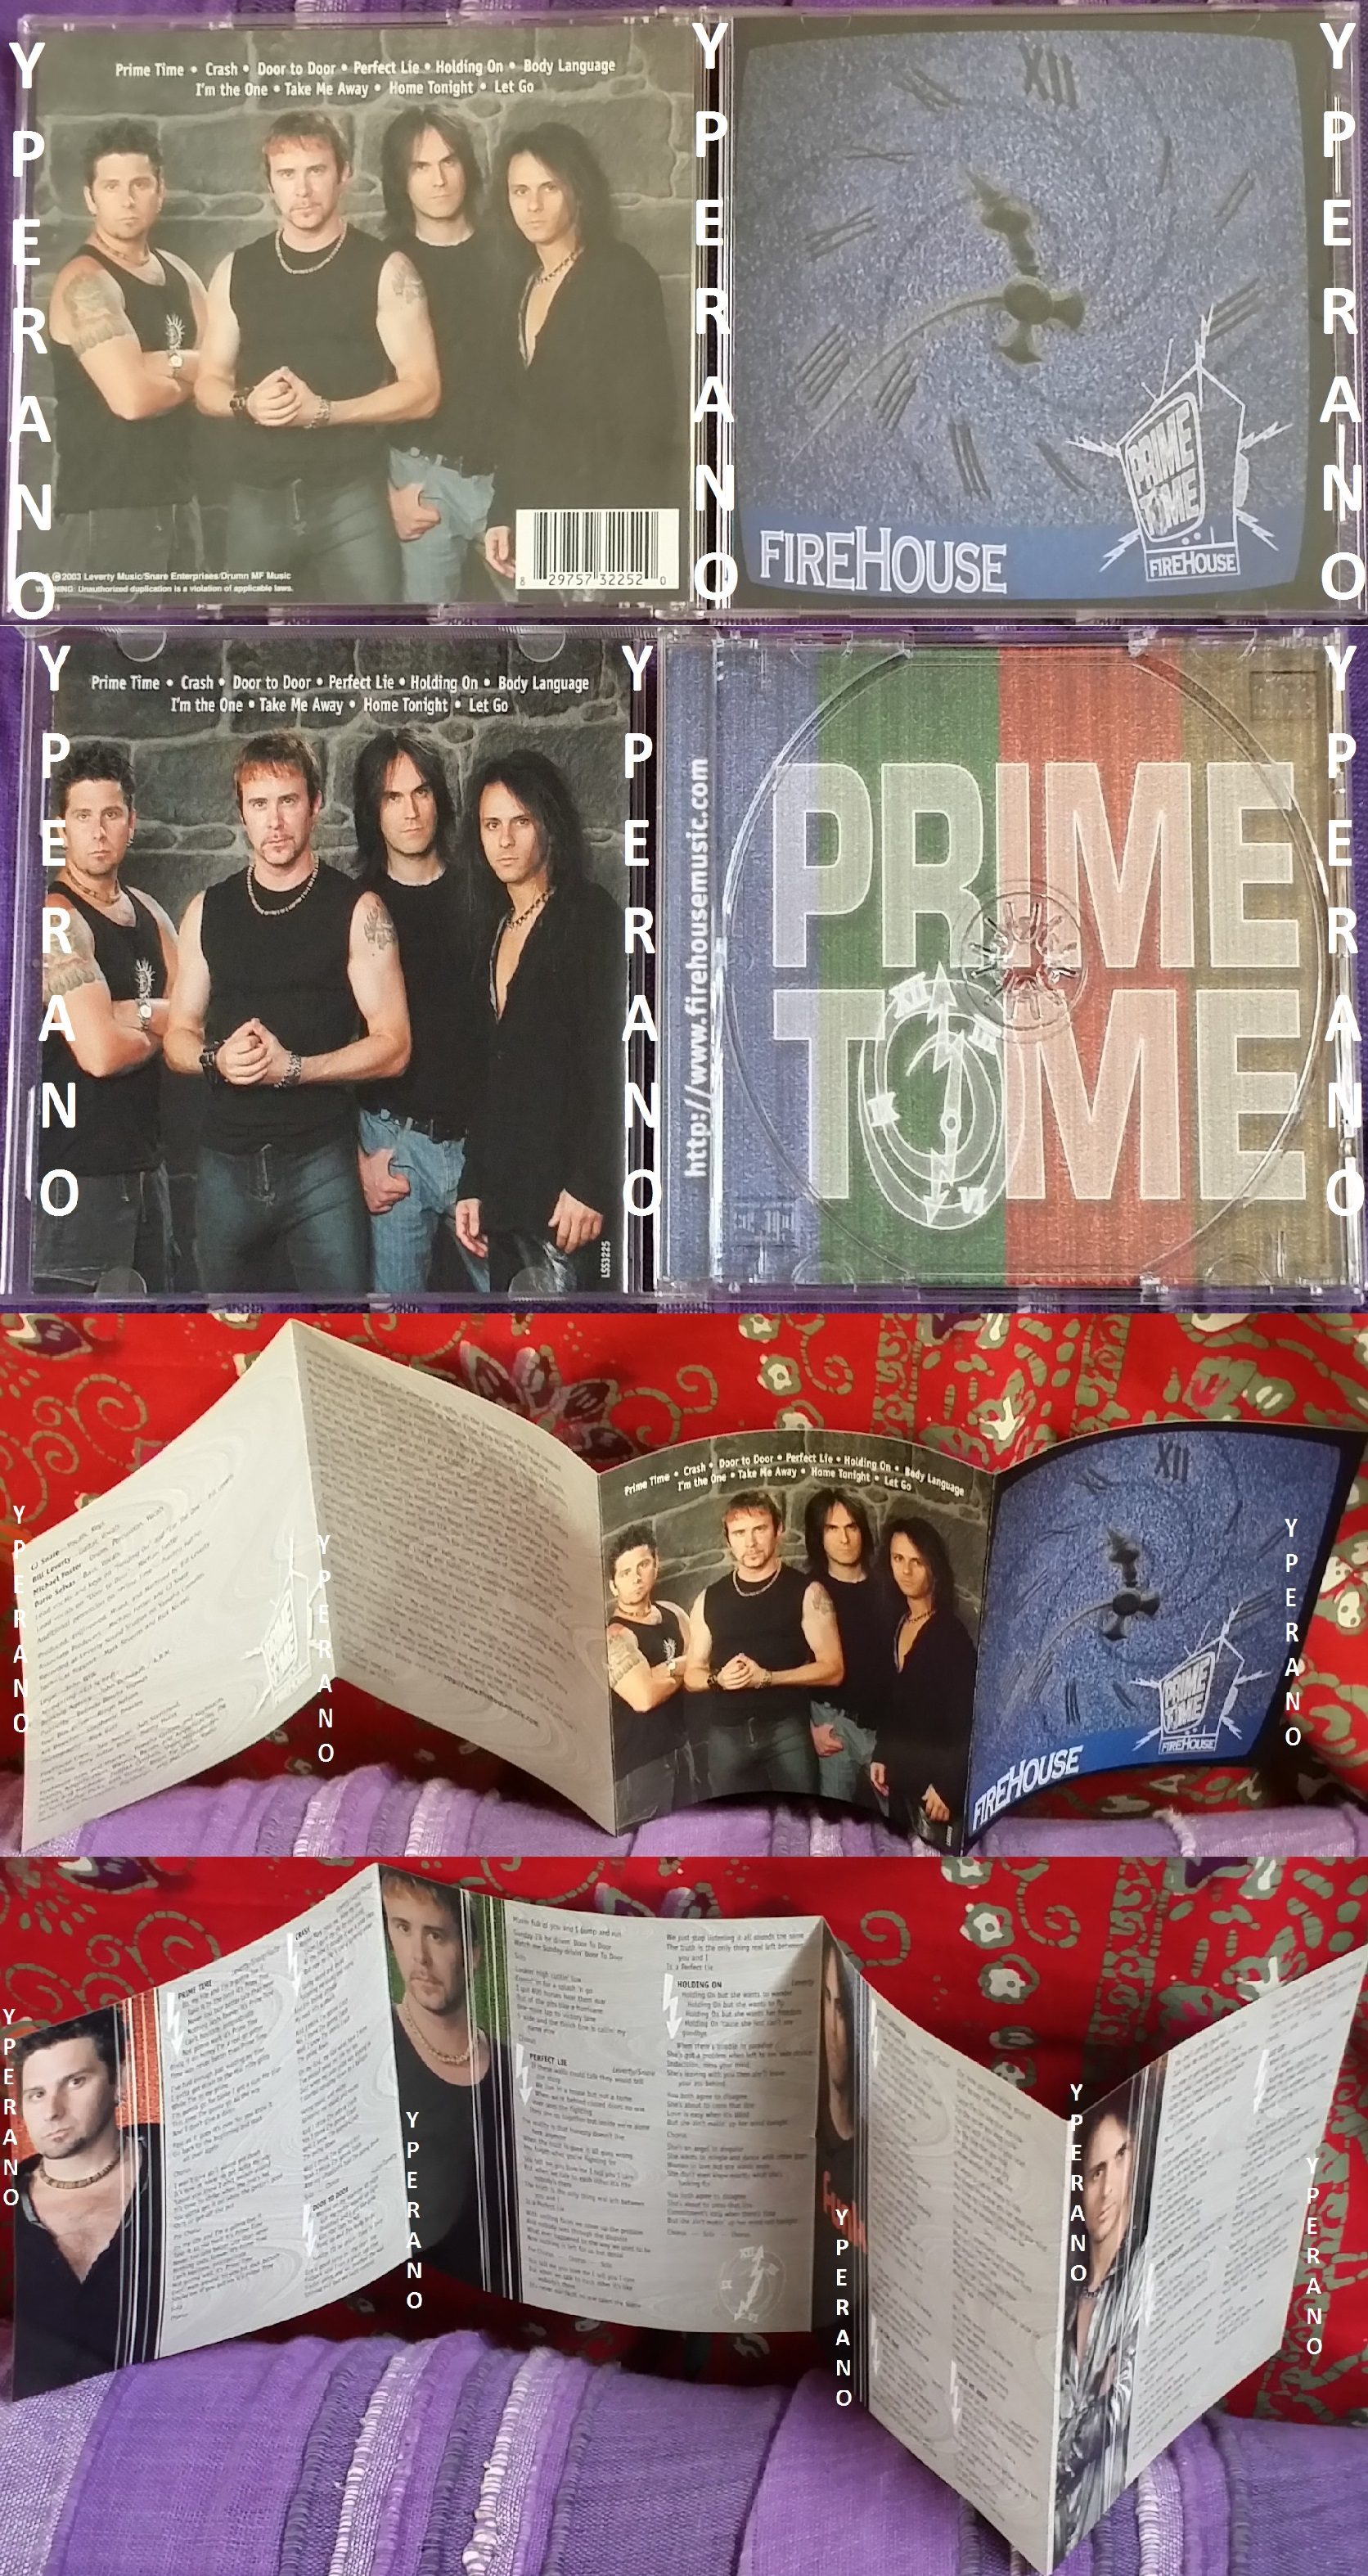 FIREHOUSE: Prime Time CD Great ballads, great rockers